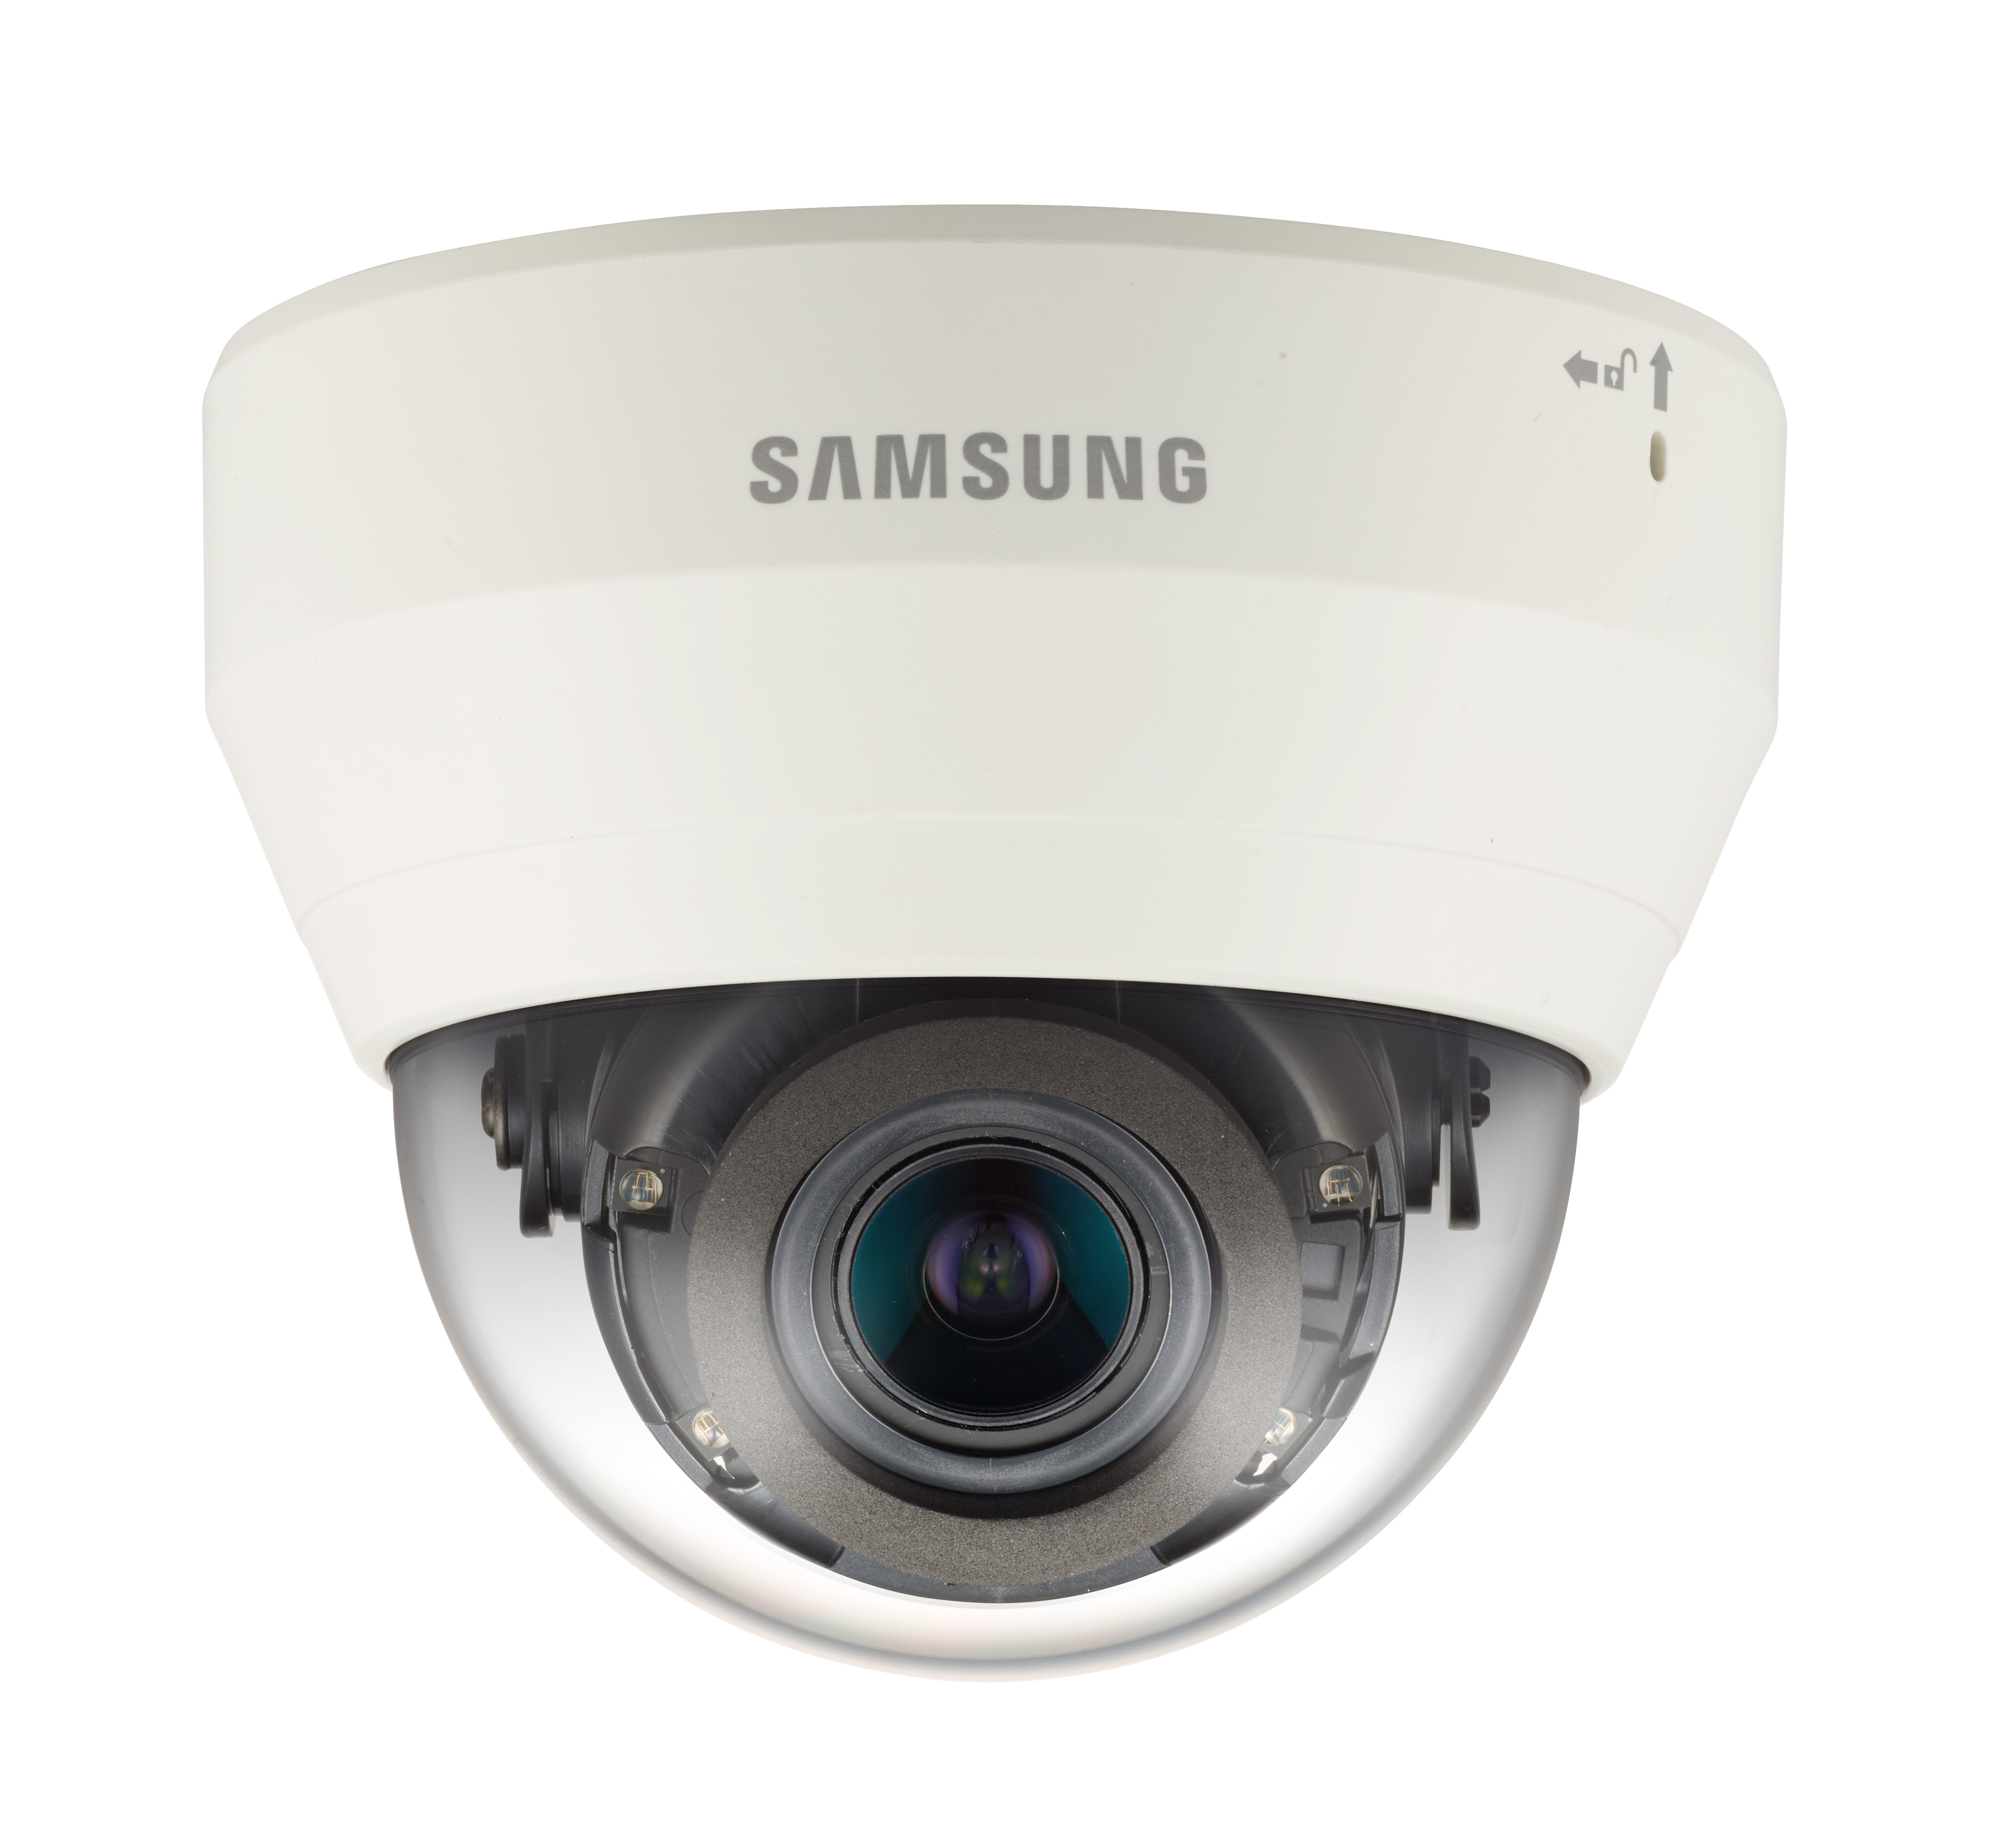 Samsung QND-7080R 4MP